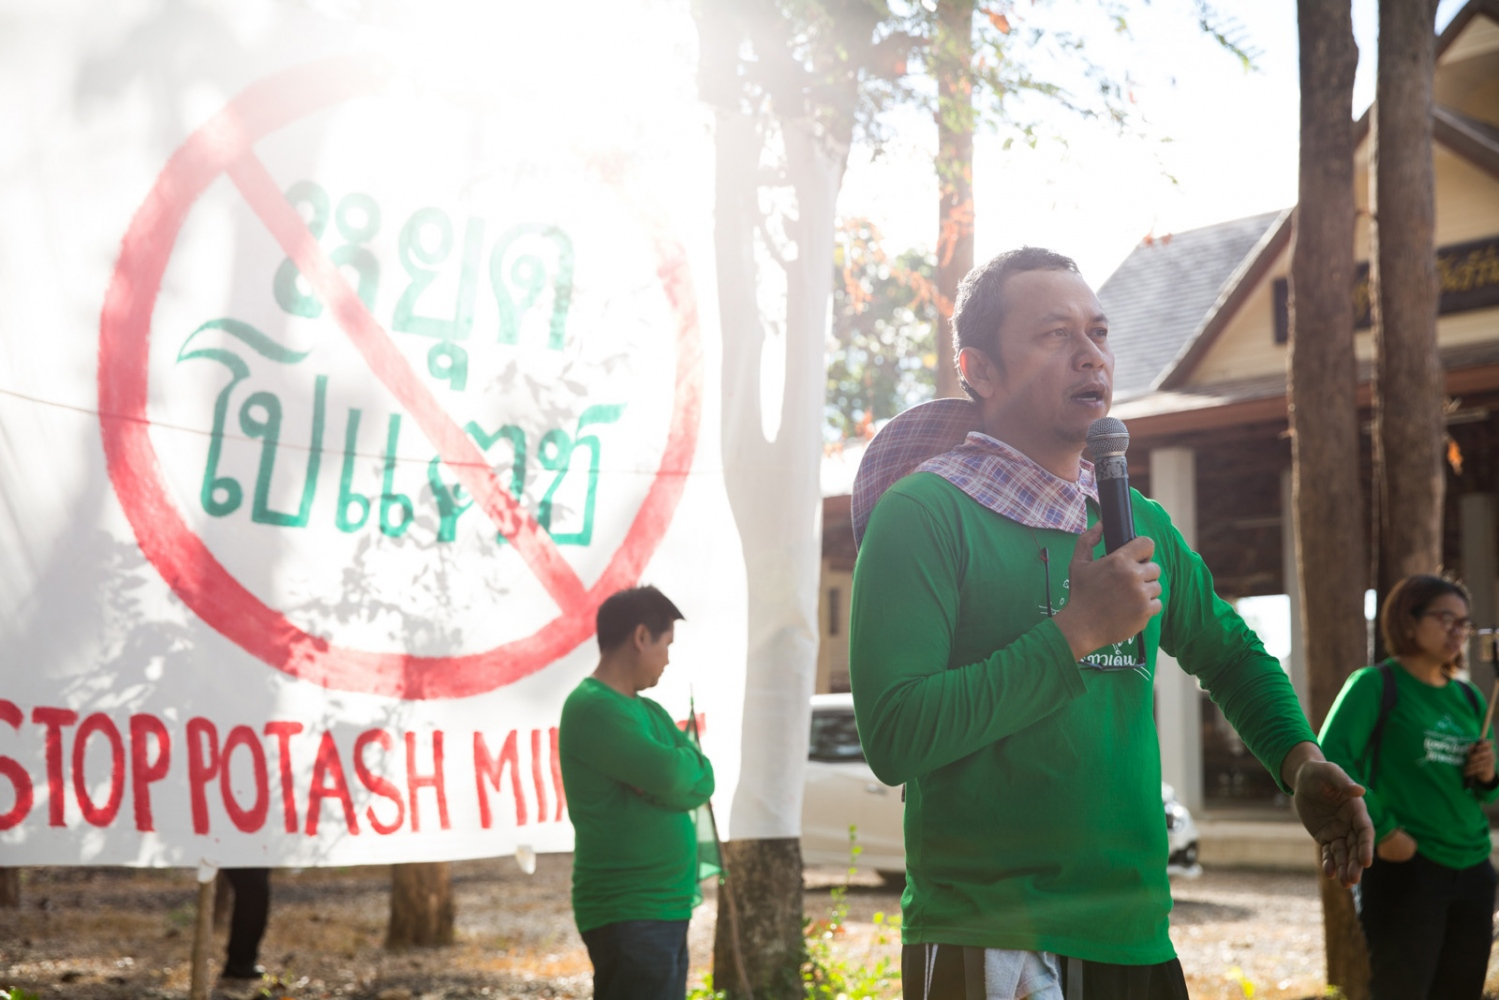 Lertsak Kumkongsak talks at the beginning of the walk to a crowd of around 200 people. He is one of the main organisers and an environment rights defender, who has been involved in community-based campaigns against the mining industry in Thailand for more than 20 years.